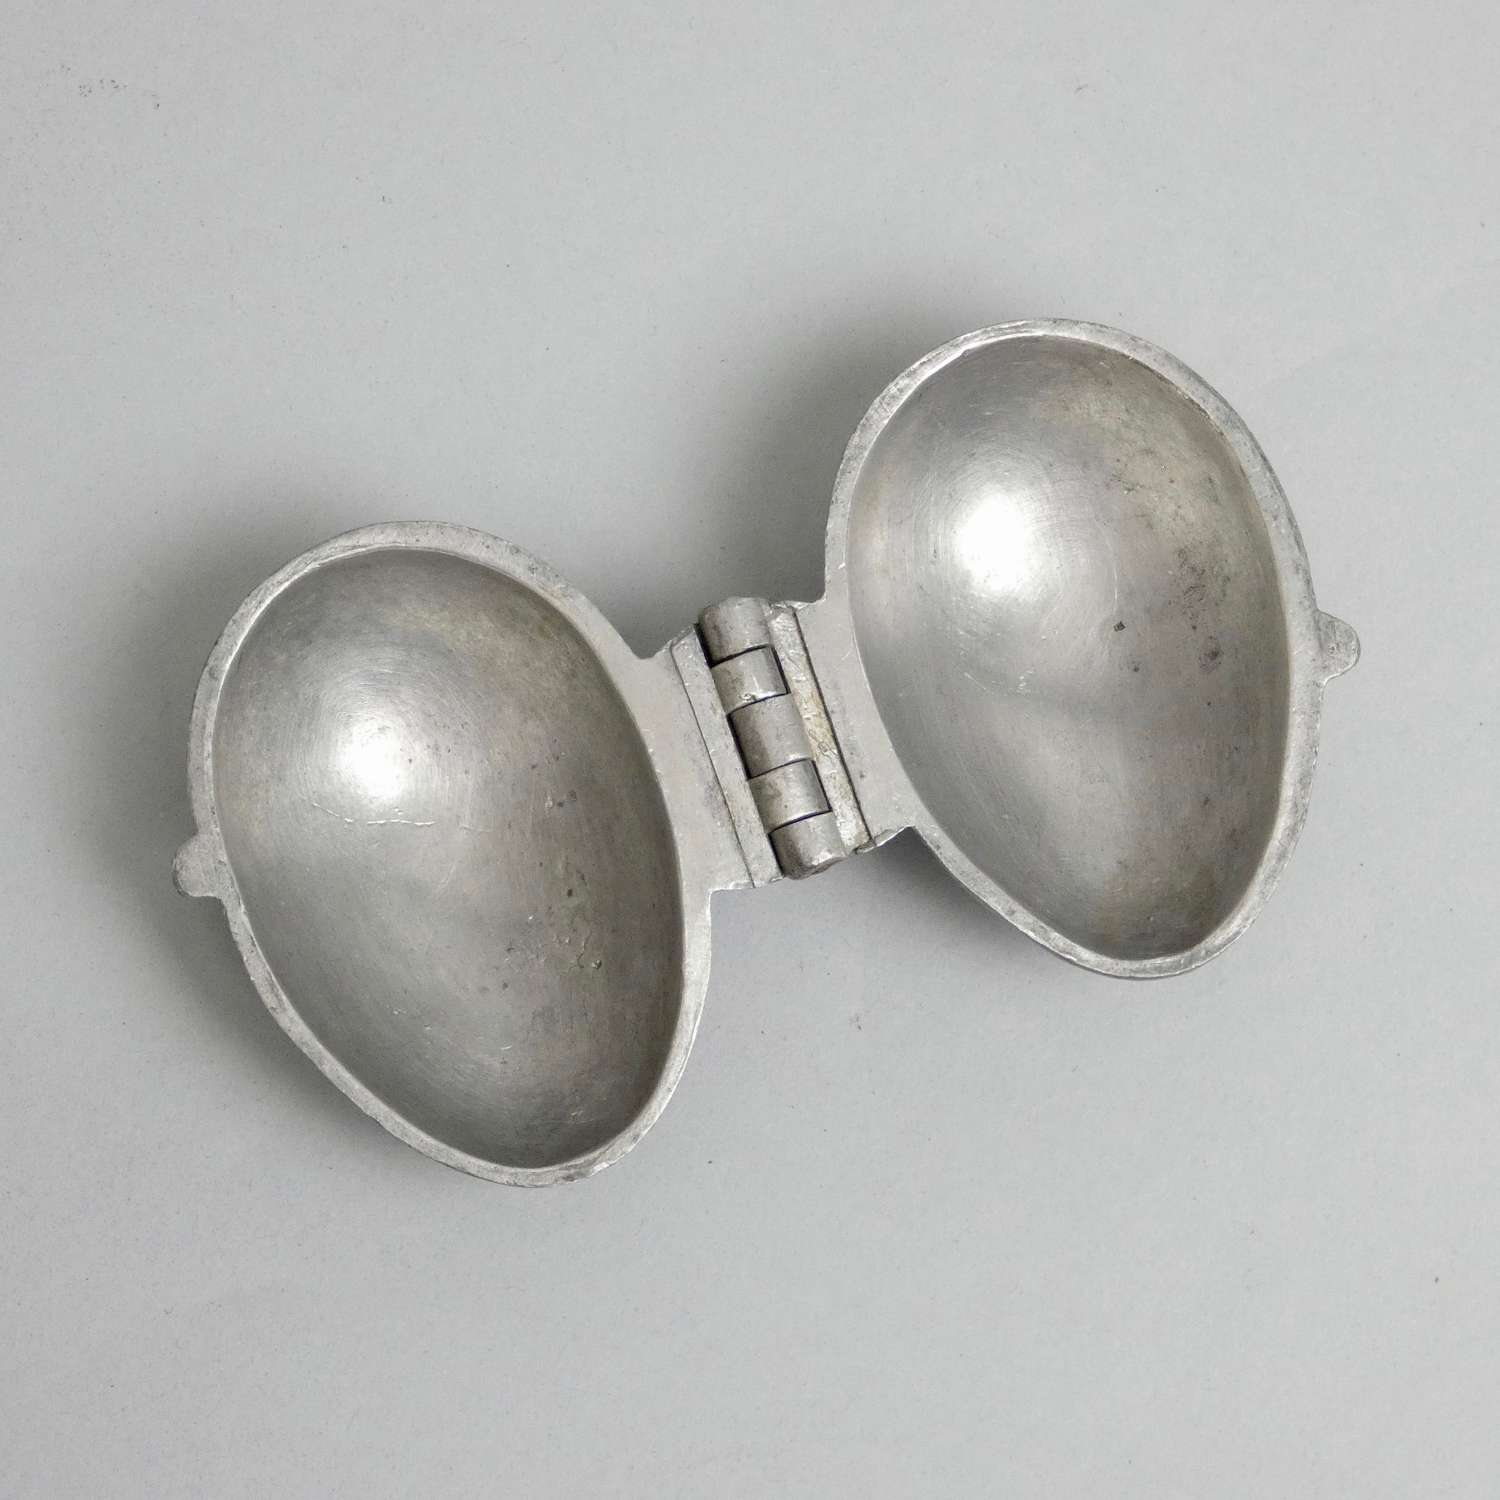 Pewter egg mould